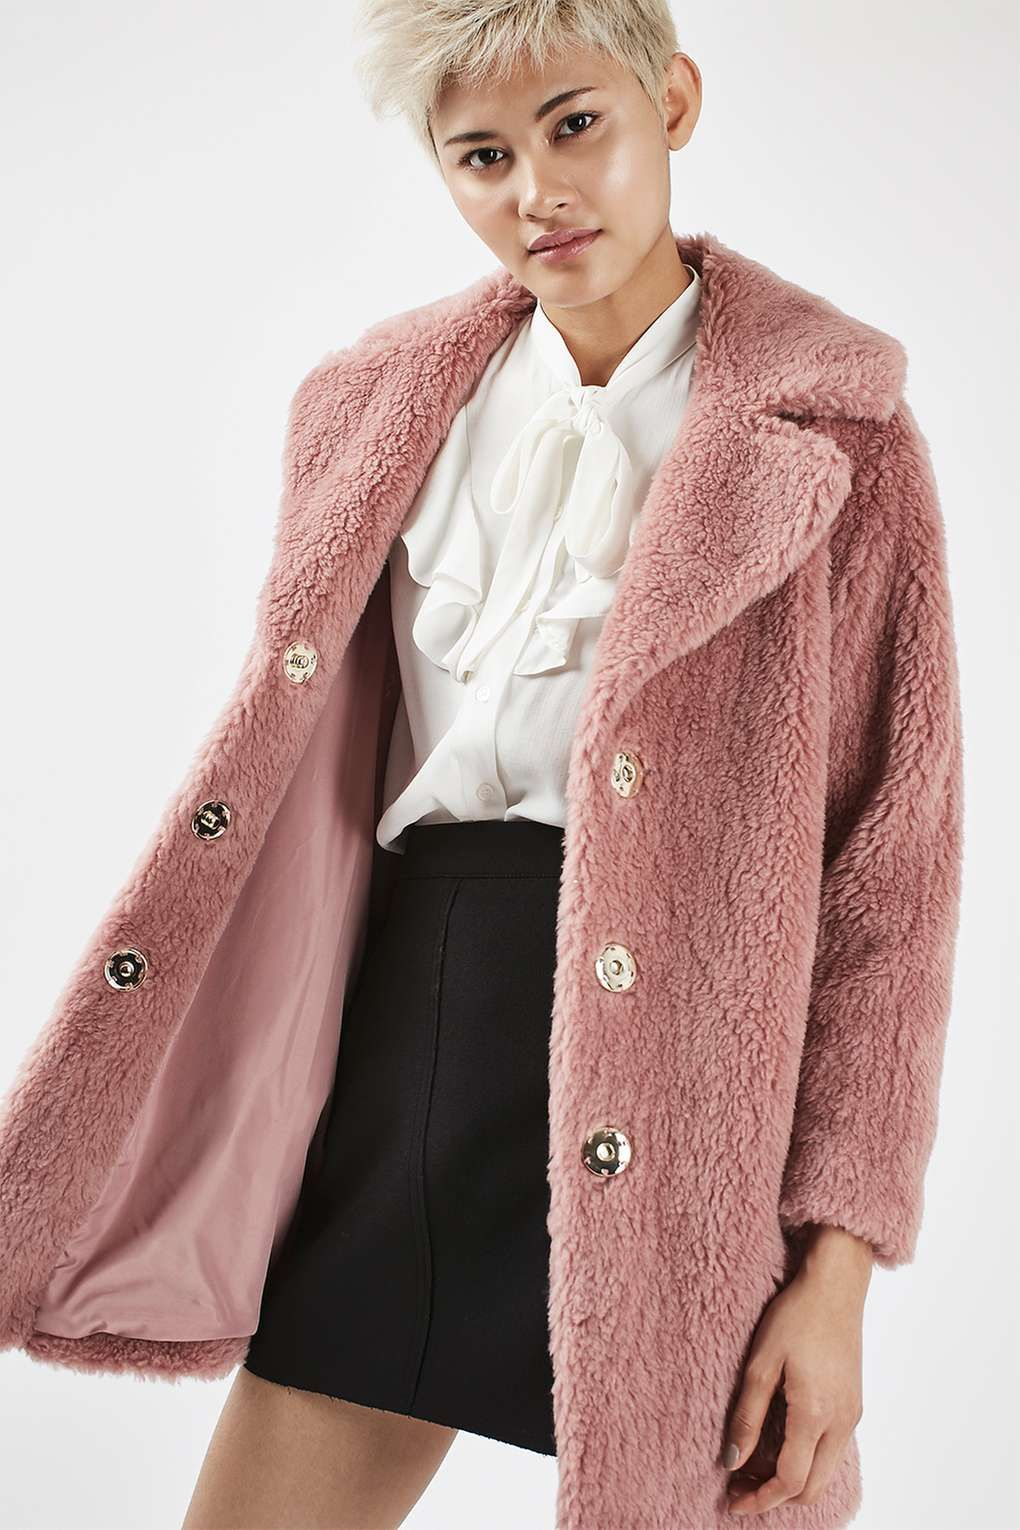 Pink Casual Faux Fur Coat | Faux fur coats, Fur coats and Fur coat